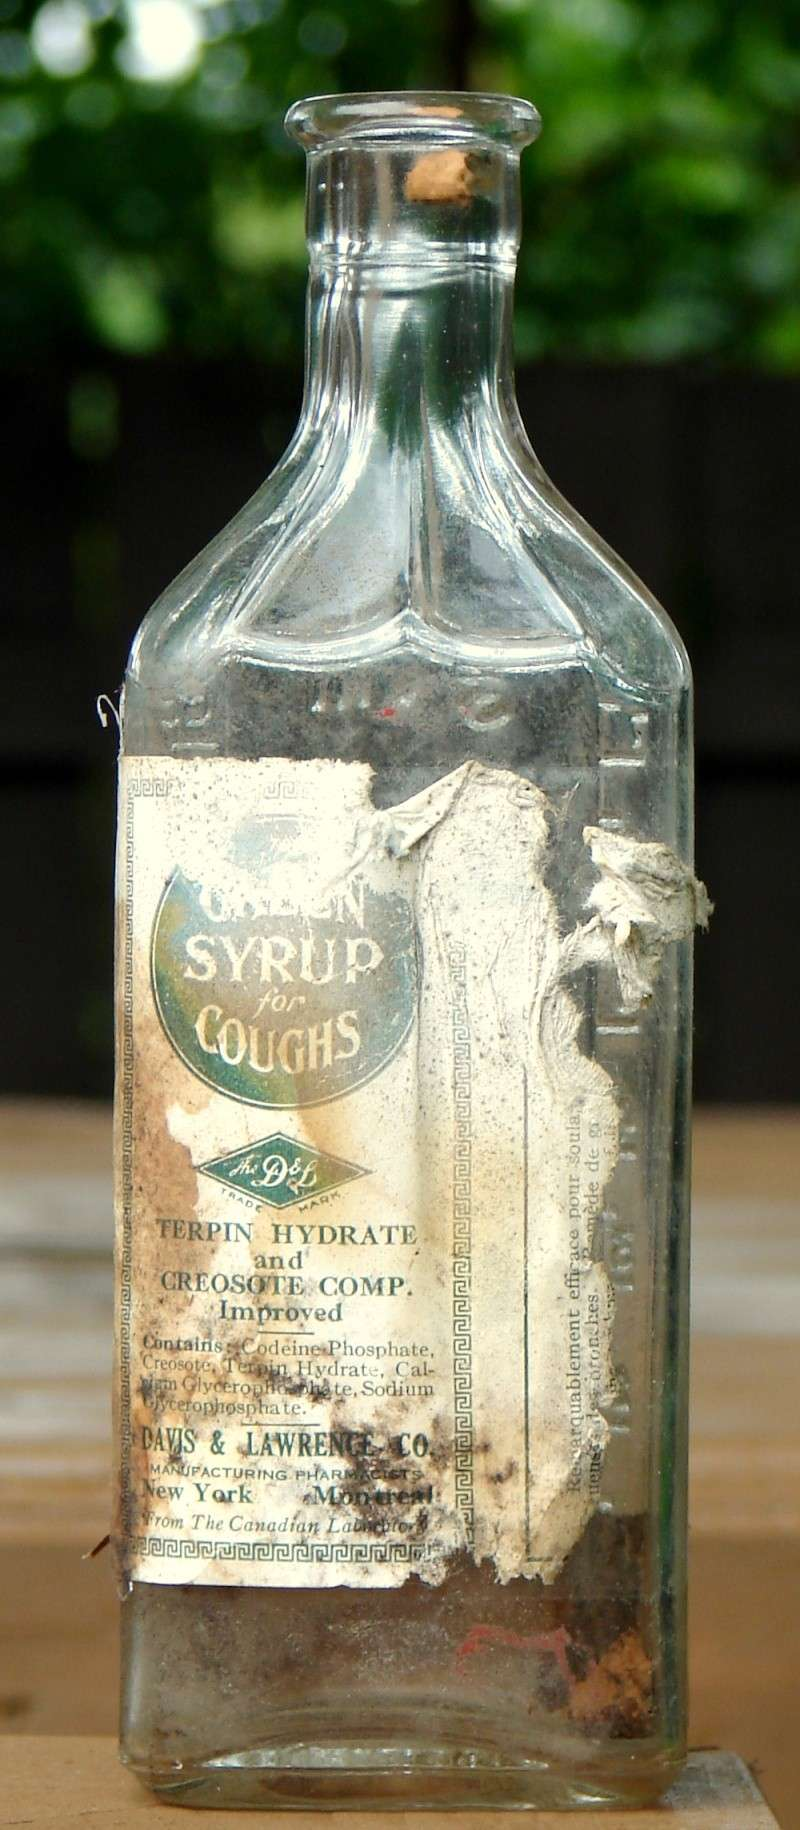 Green syrup for coughs de Davis & Lawrence Green_10